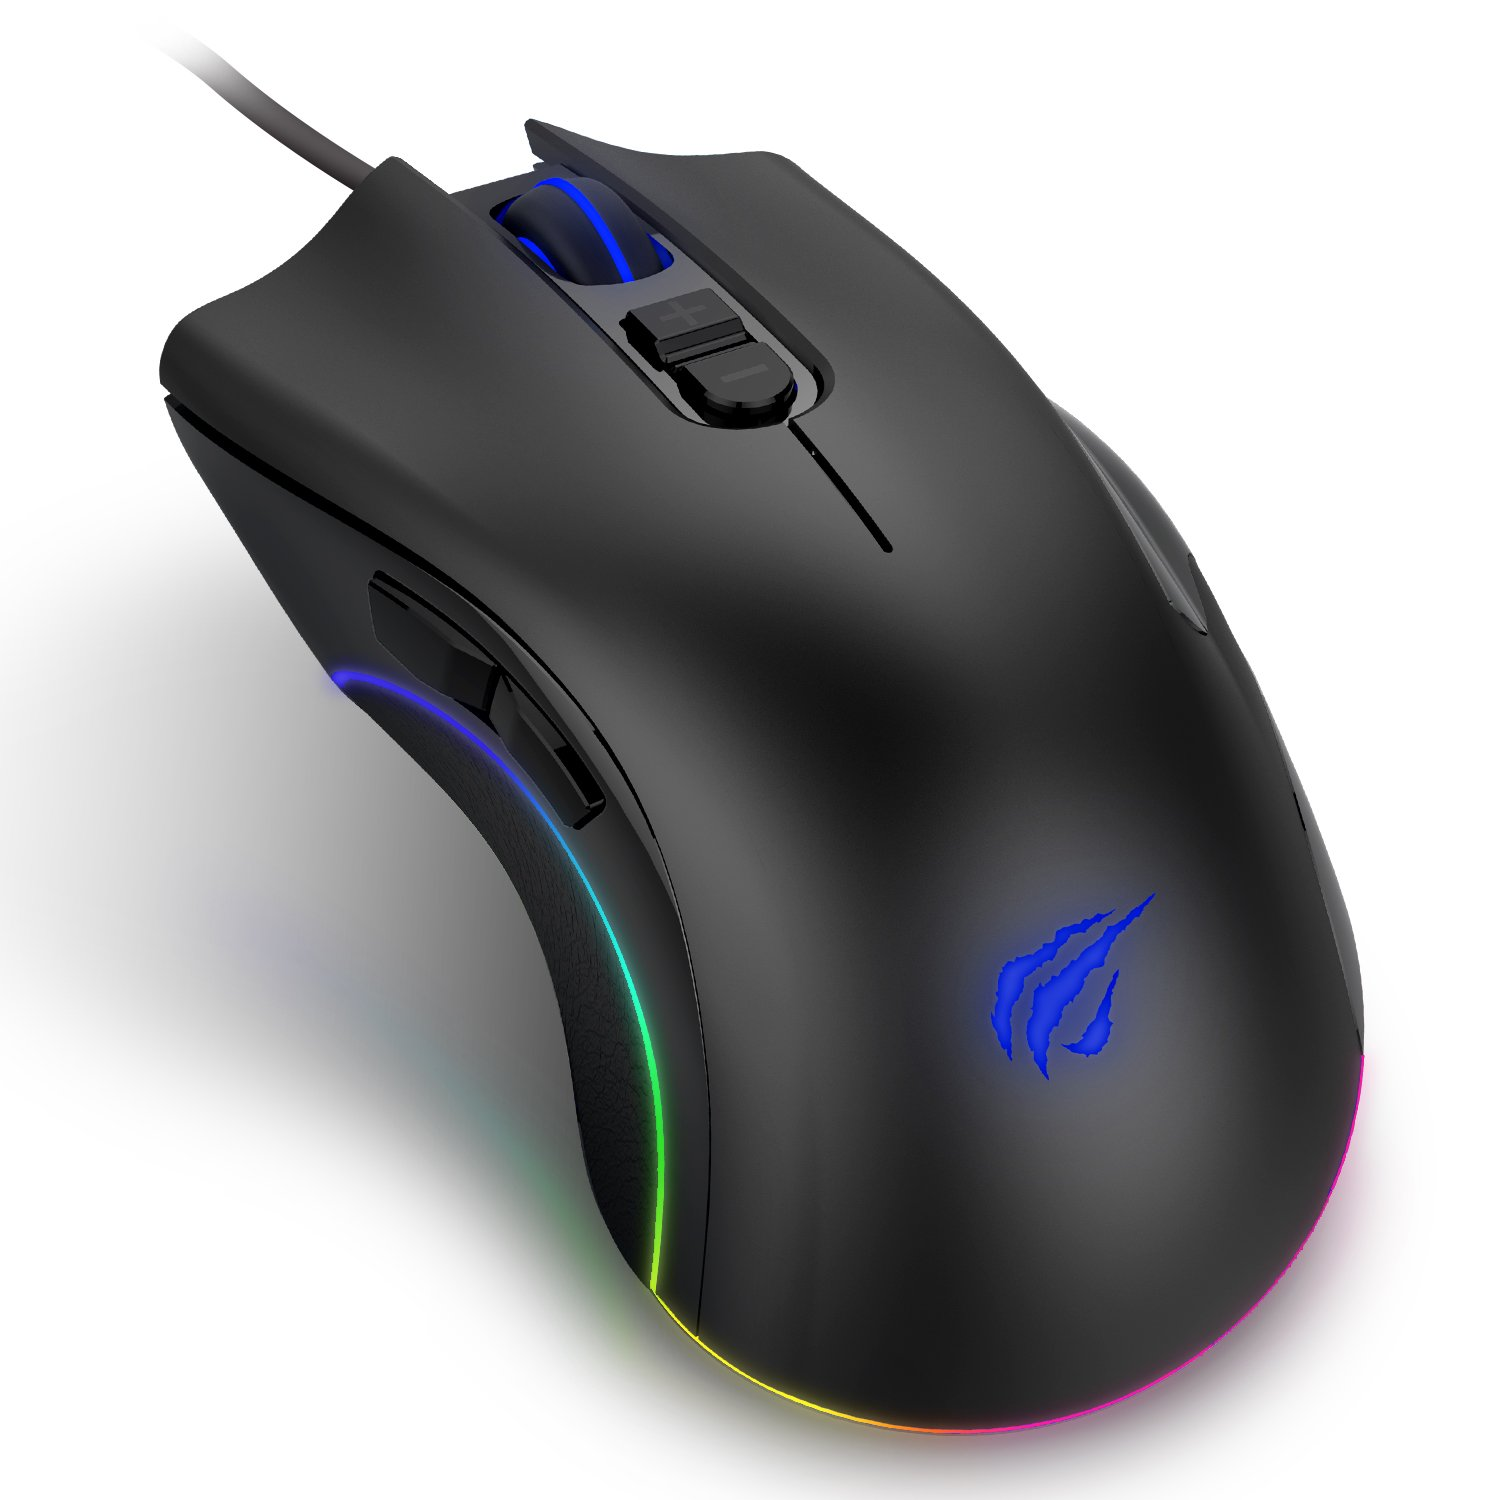 8928f3364e2 HAVIT Programmable Gaming Mouse 4000DPI 7 Buttons RGB Backlit Wired Optical  for Laptop, PC & Computer, MS794 (Black): Amazon.co.uk: Computers &  Accessories